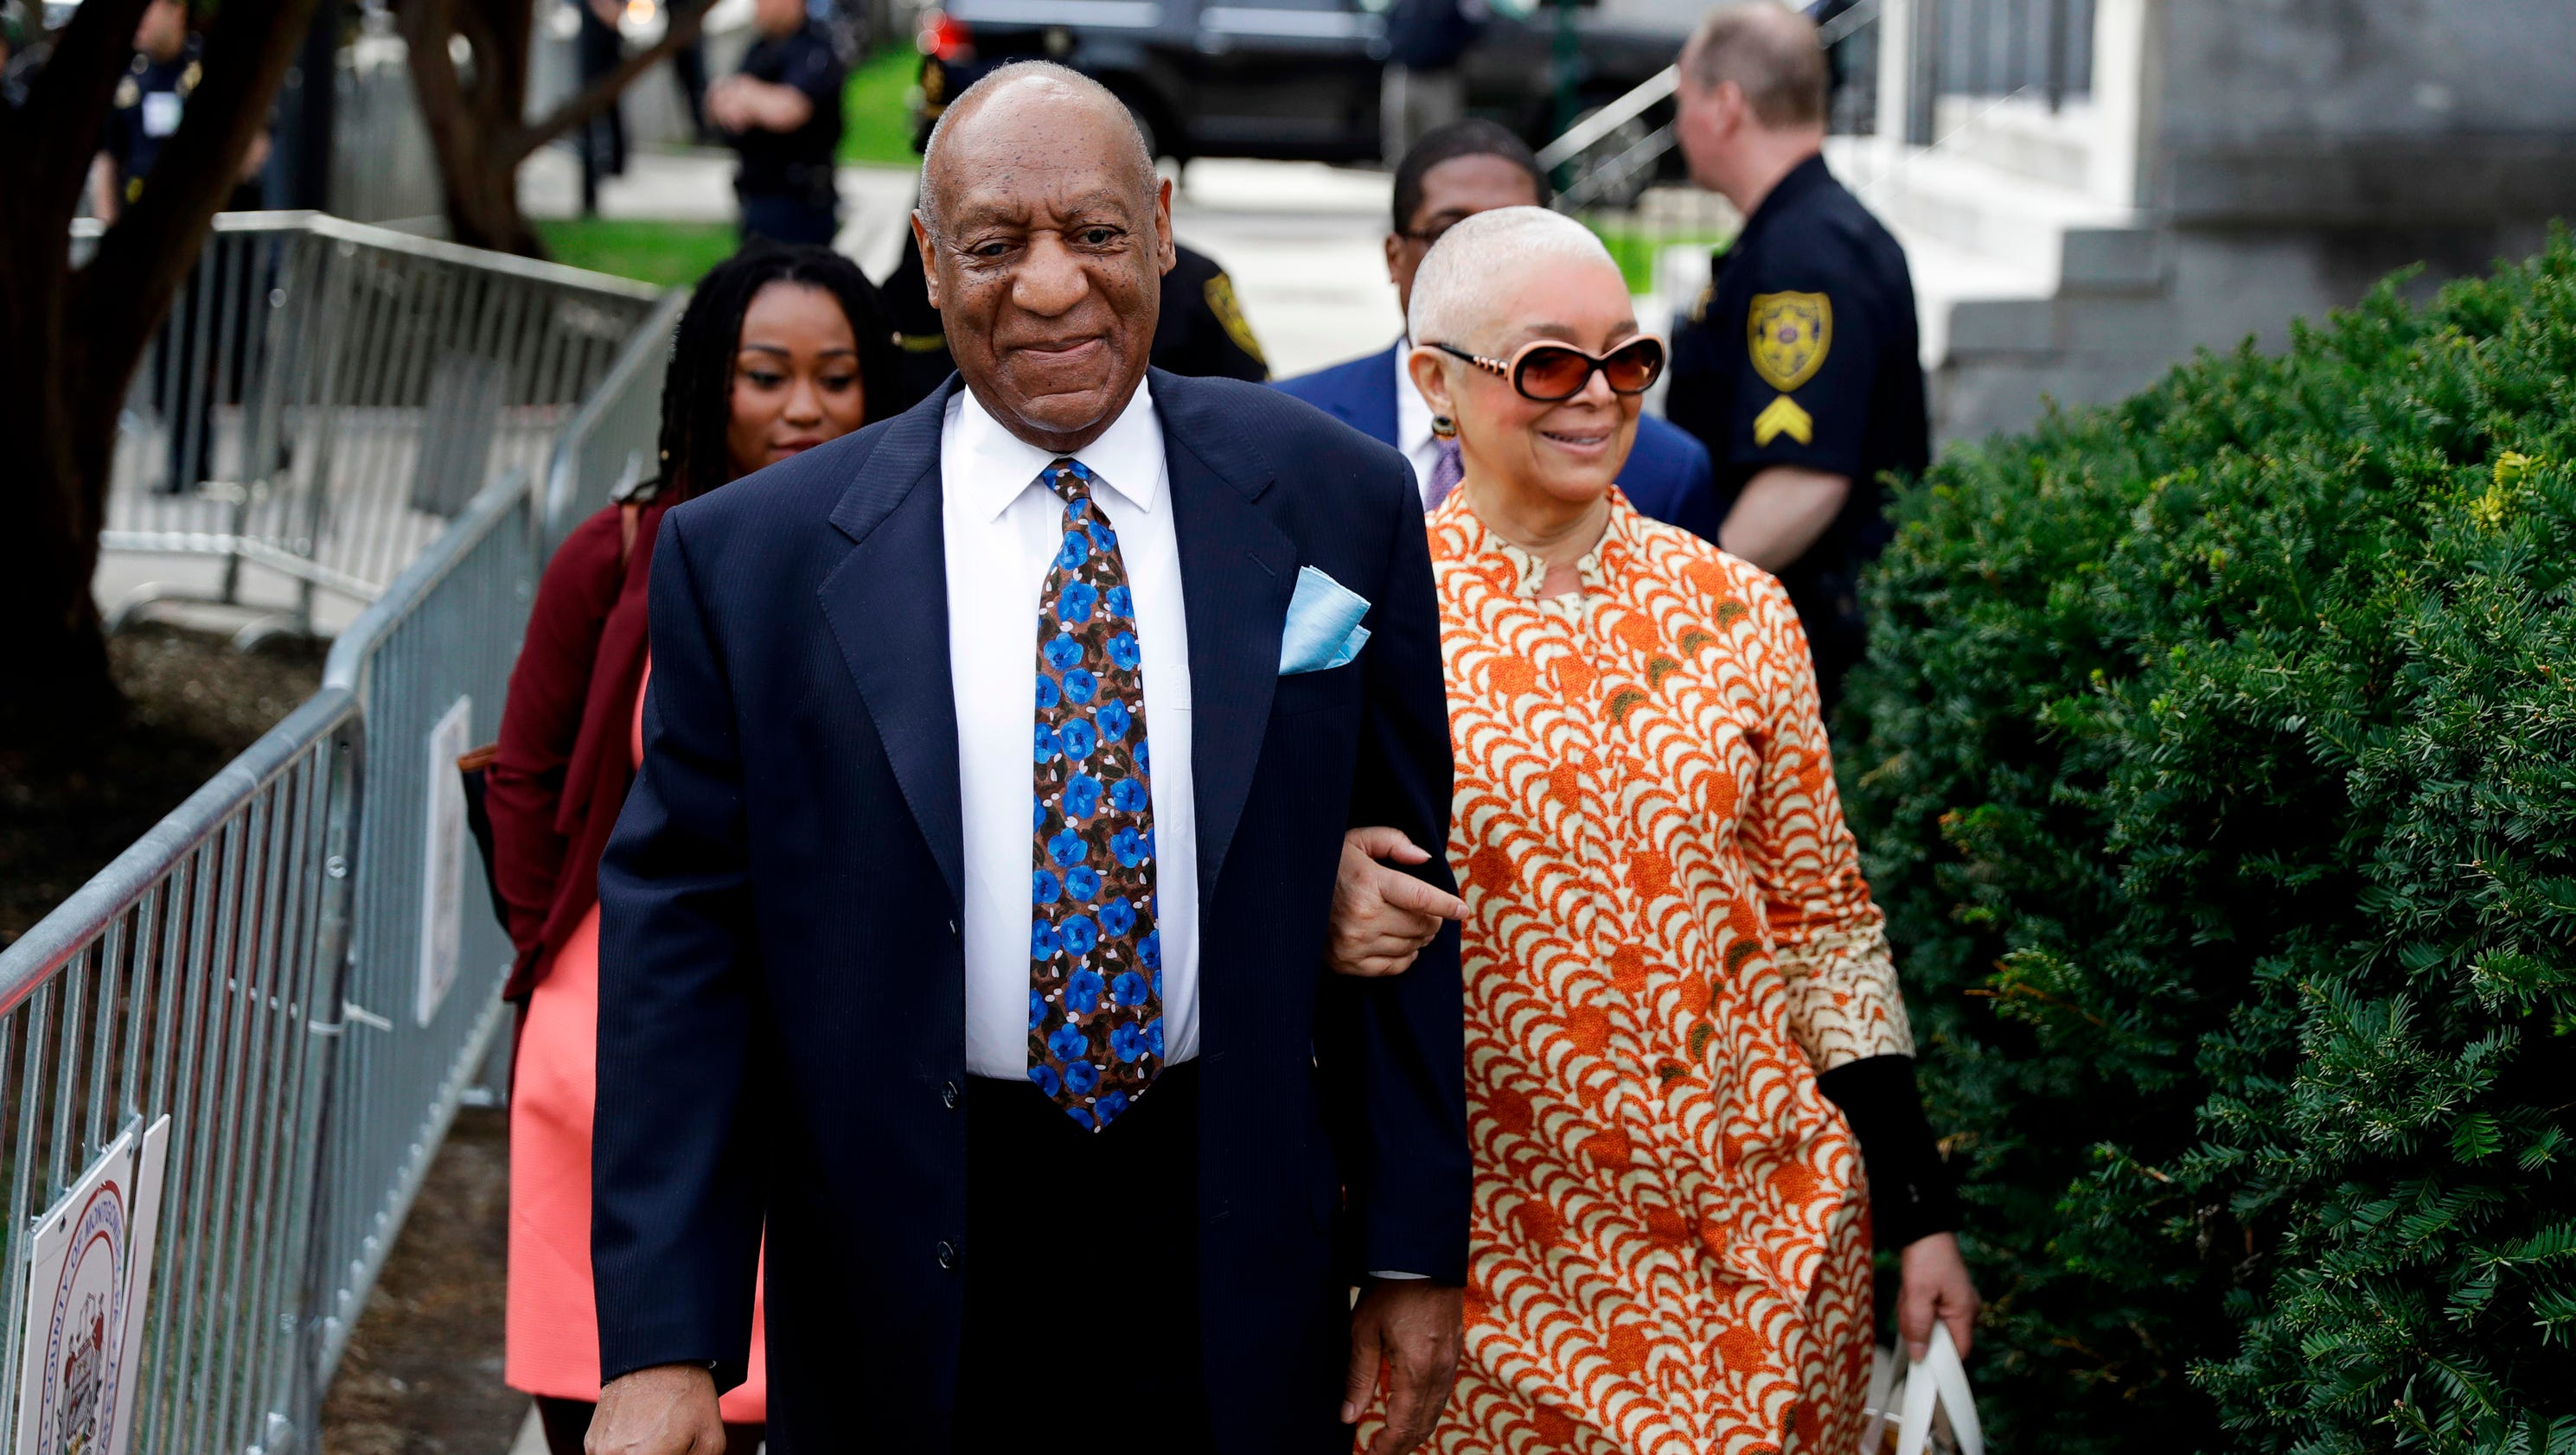 Camille Cosby lashes out in blistering statement defending husband